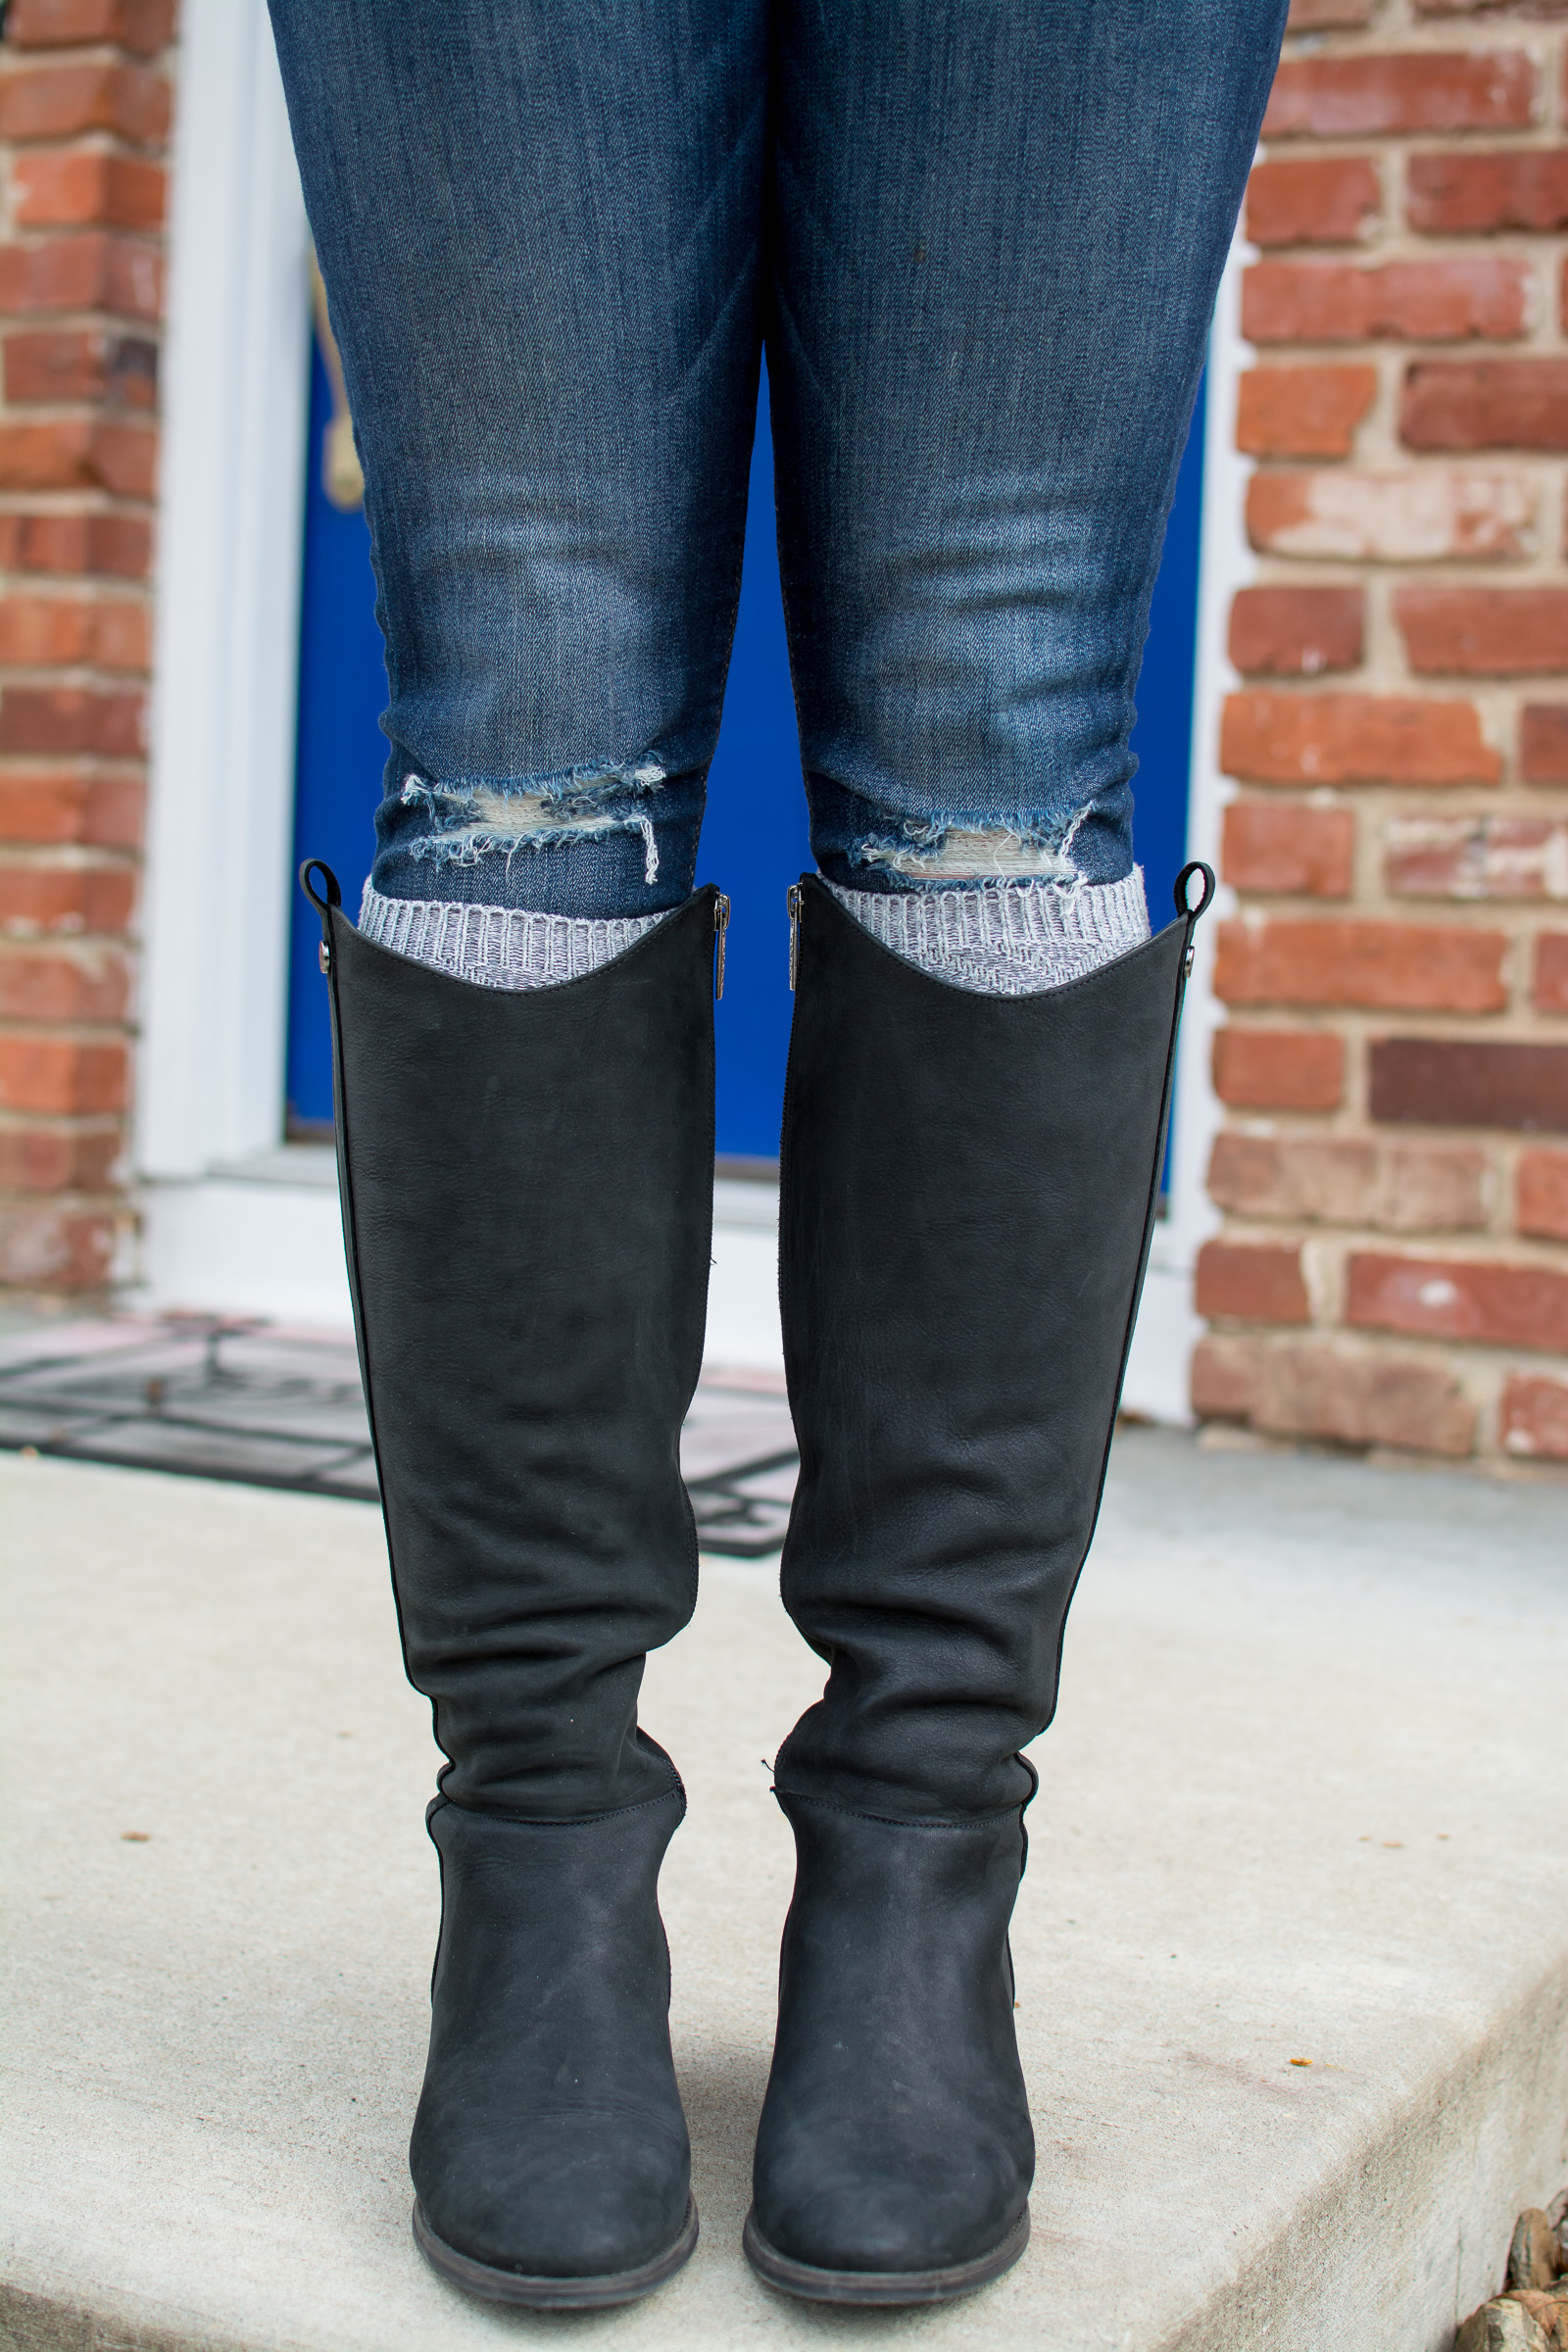 Riding Boots + Tall Socks. | Ashley from Le Stylo Rouge